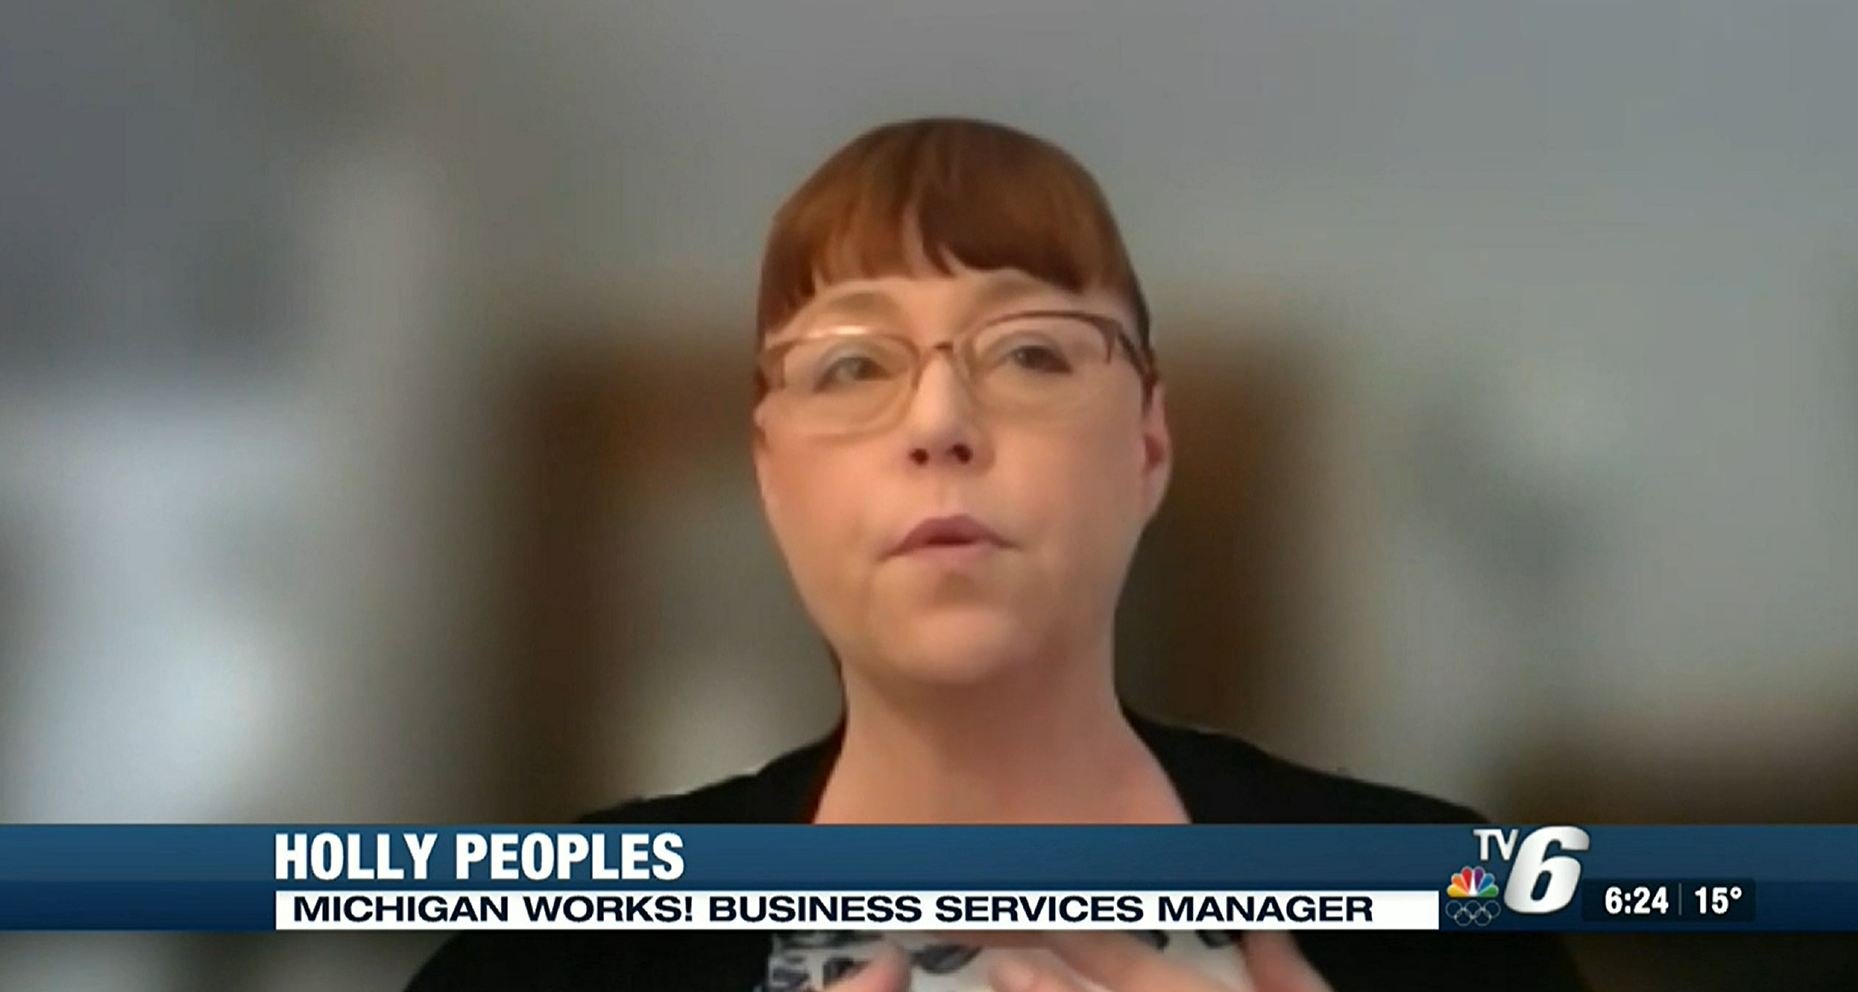 Screen capture of Holly Peoples being interviewed on TV 6.